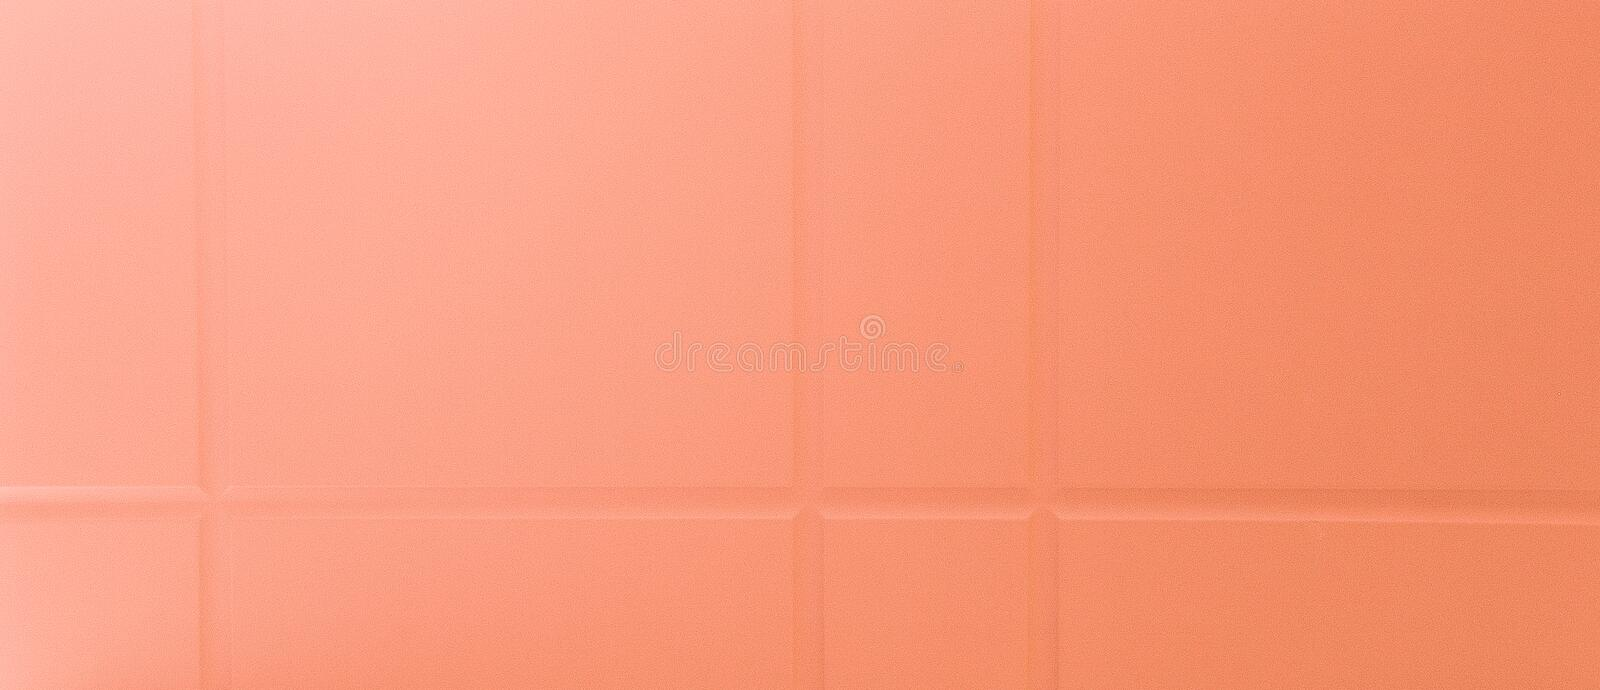 Beige abstract background stock photography